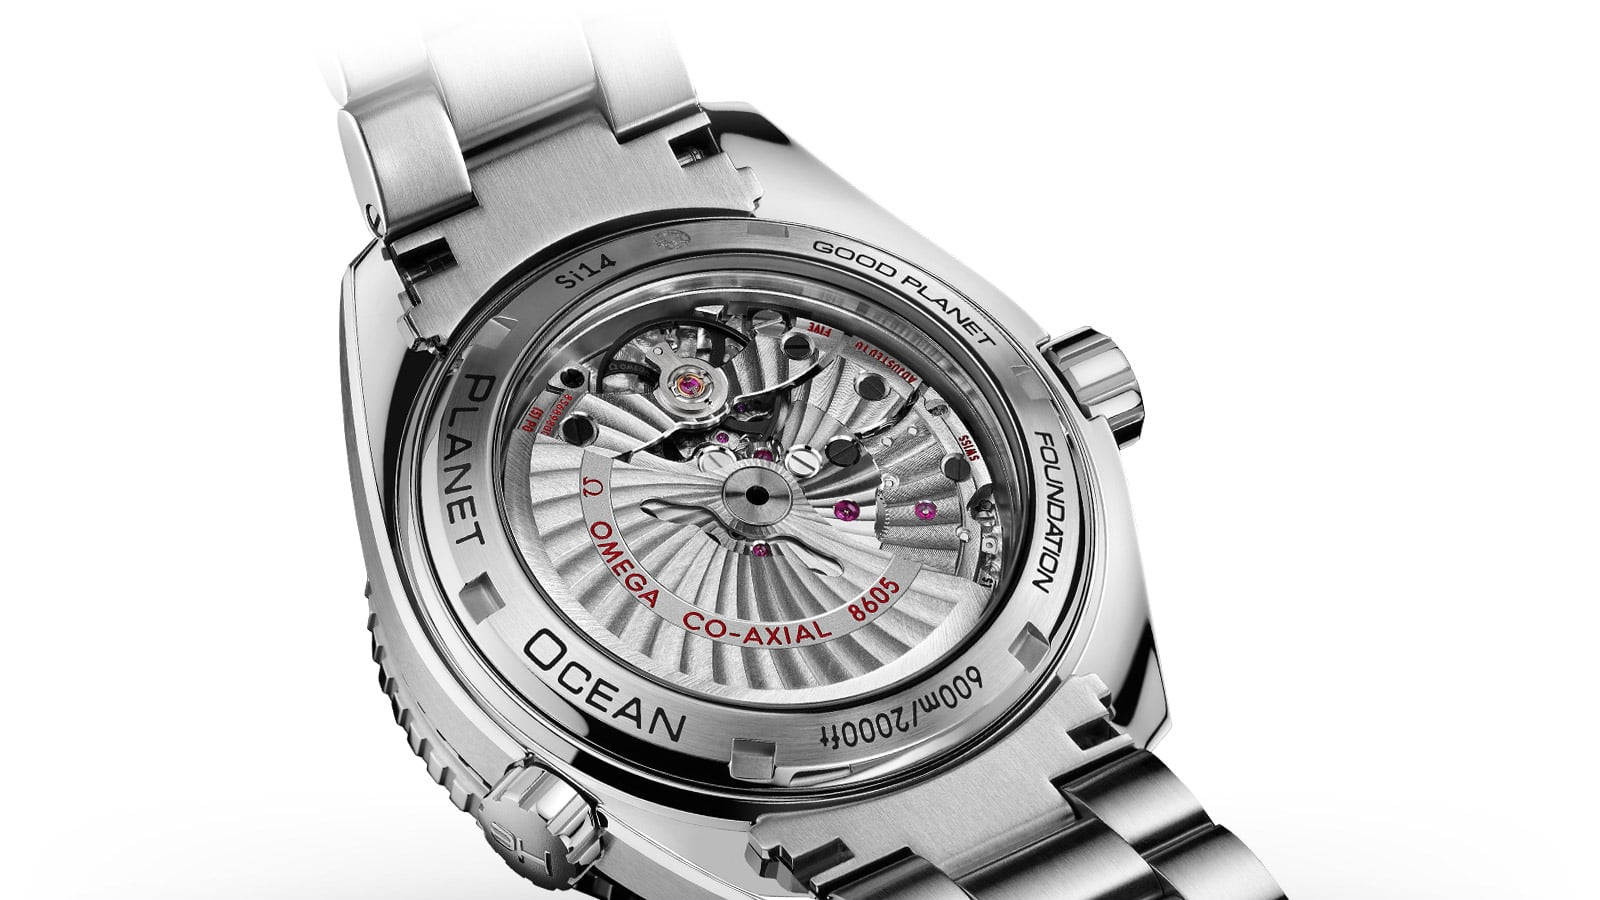 The OMEGA Co-Axial calibre 8605